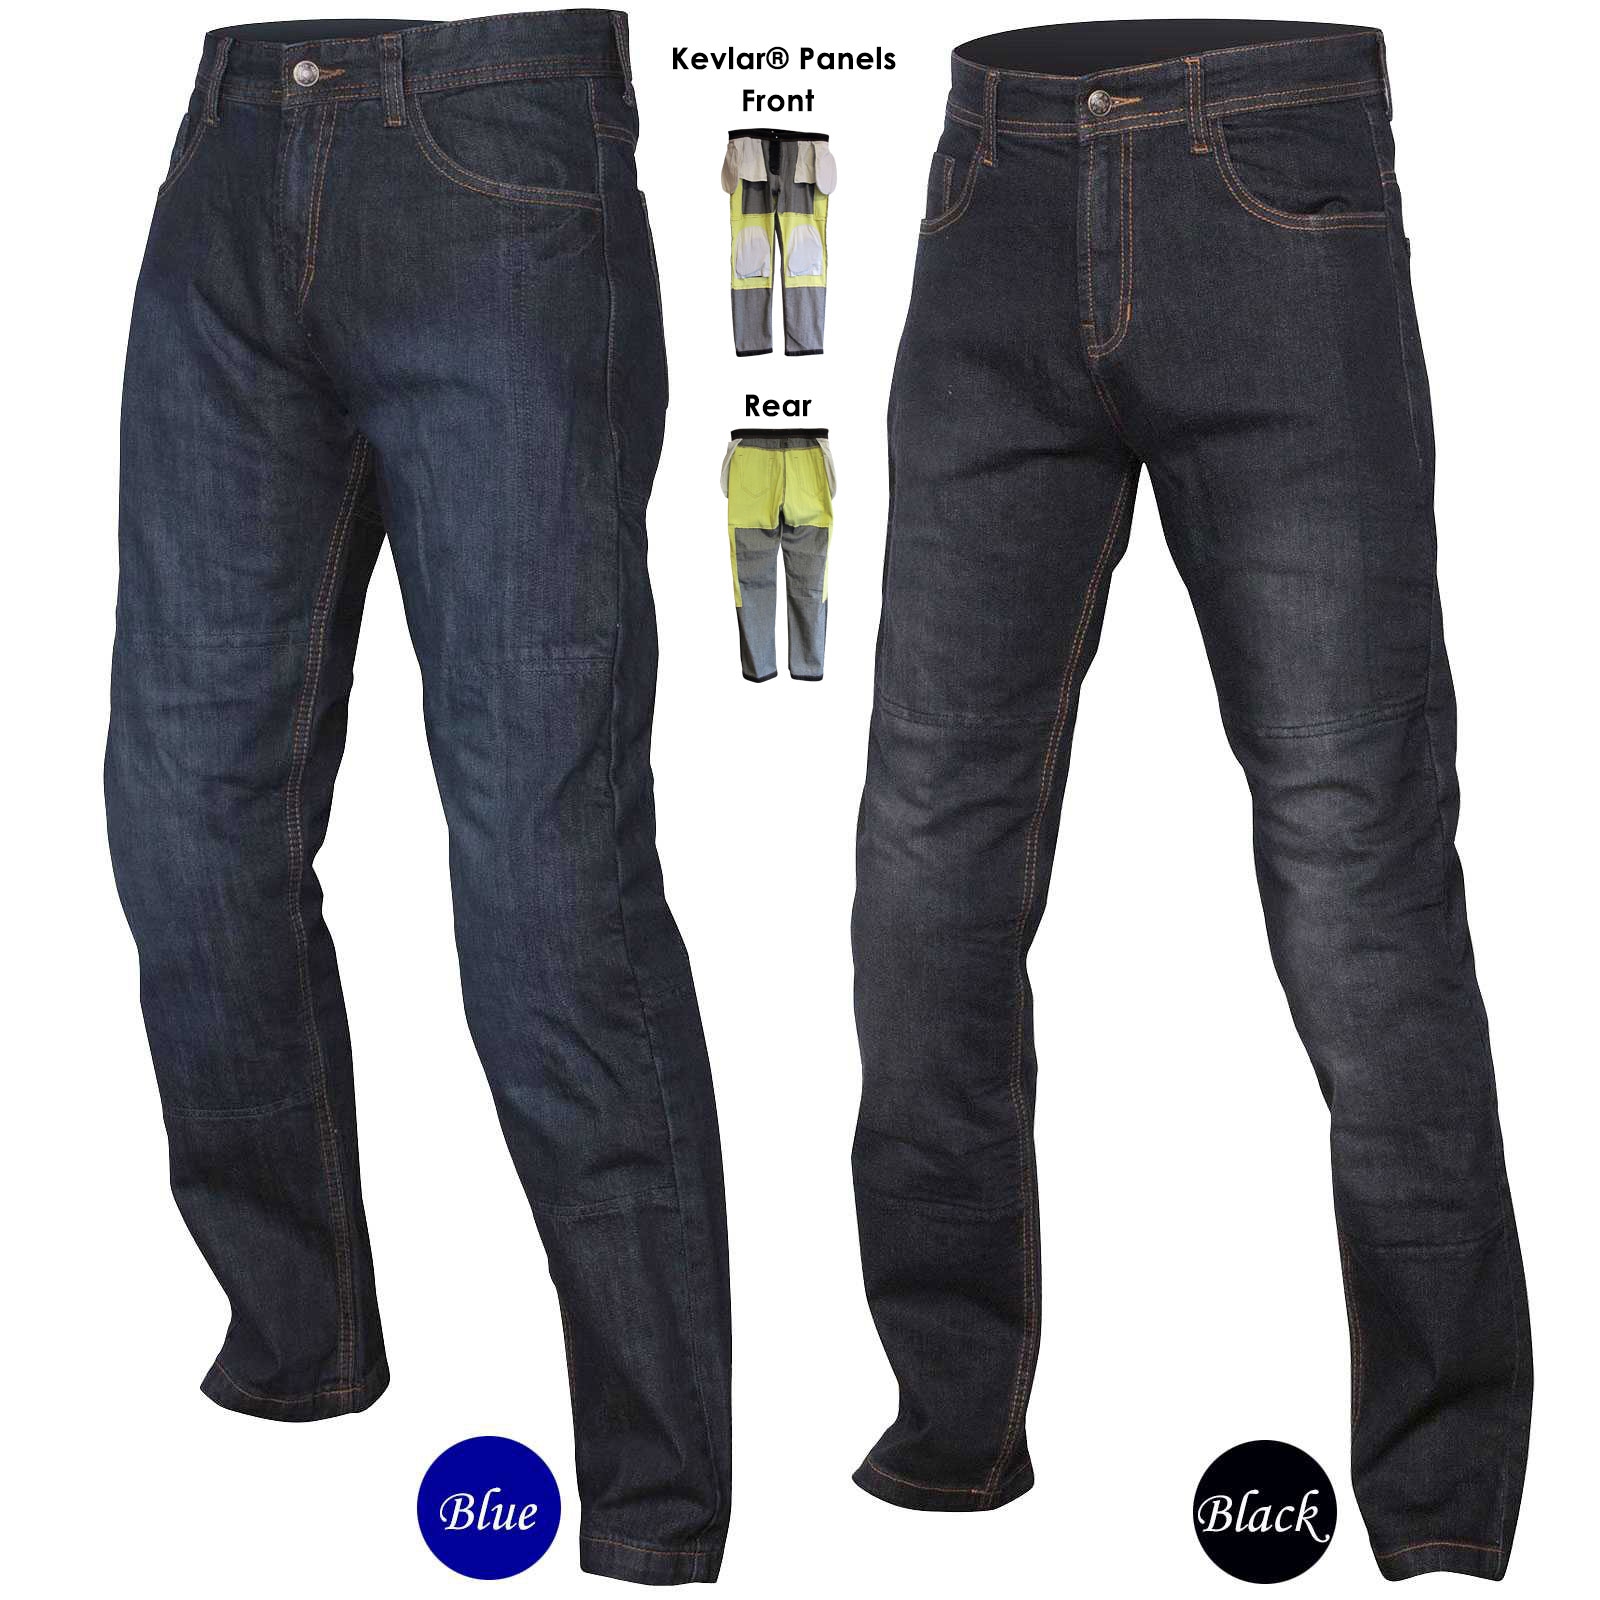 Men's Motorcycle Protective Trousers Made With DuPont ...